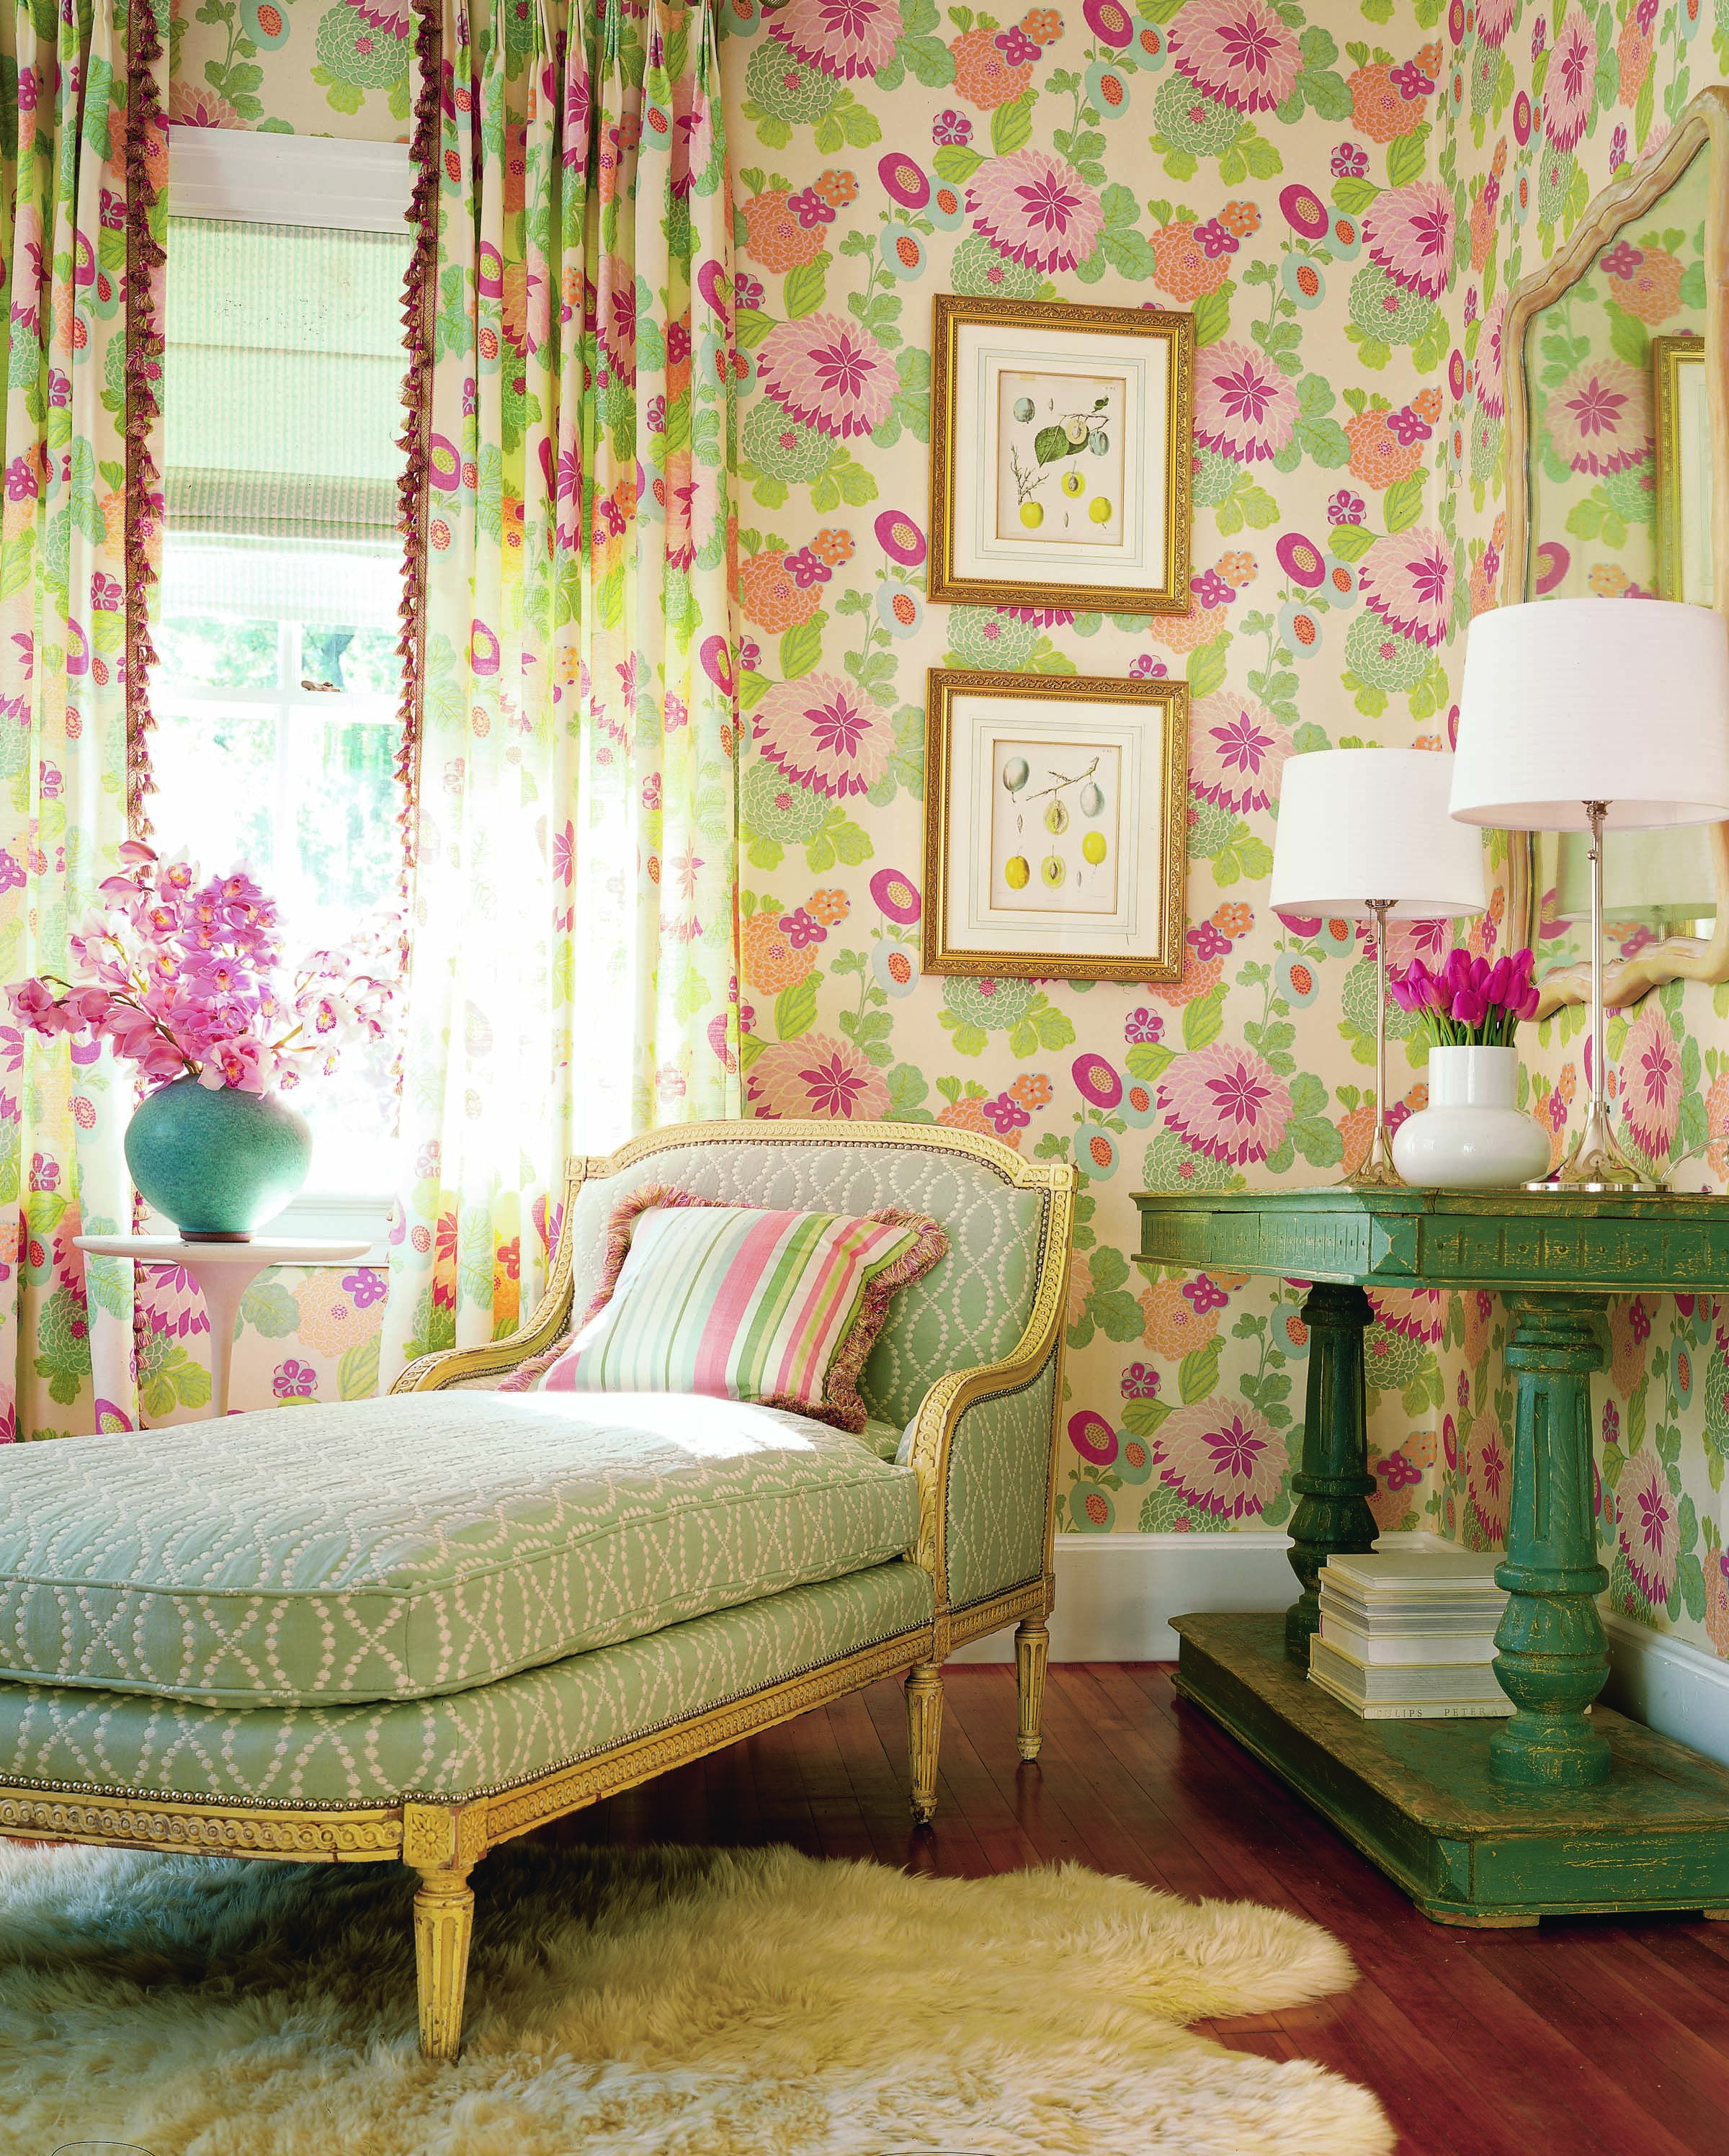 Wallpapers For Rooms Coco Wallpaper And Fabric From Chelsea Thibaut  Matchy Matchy